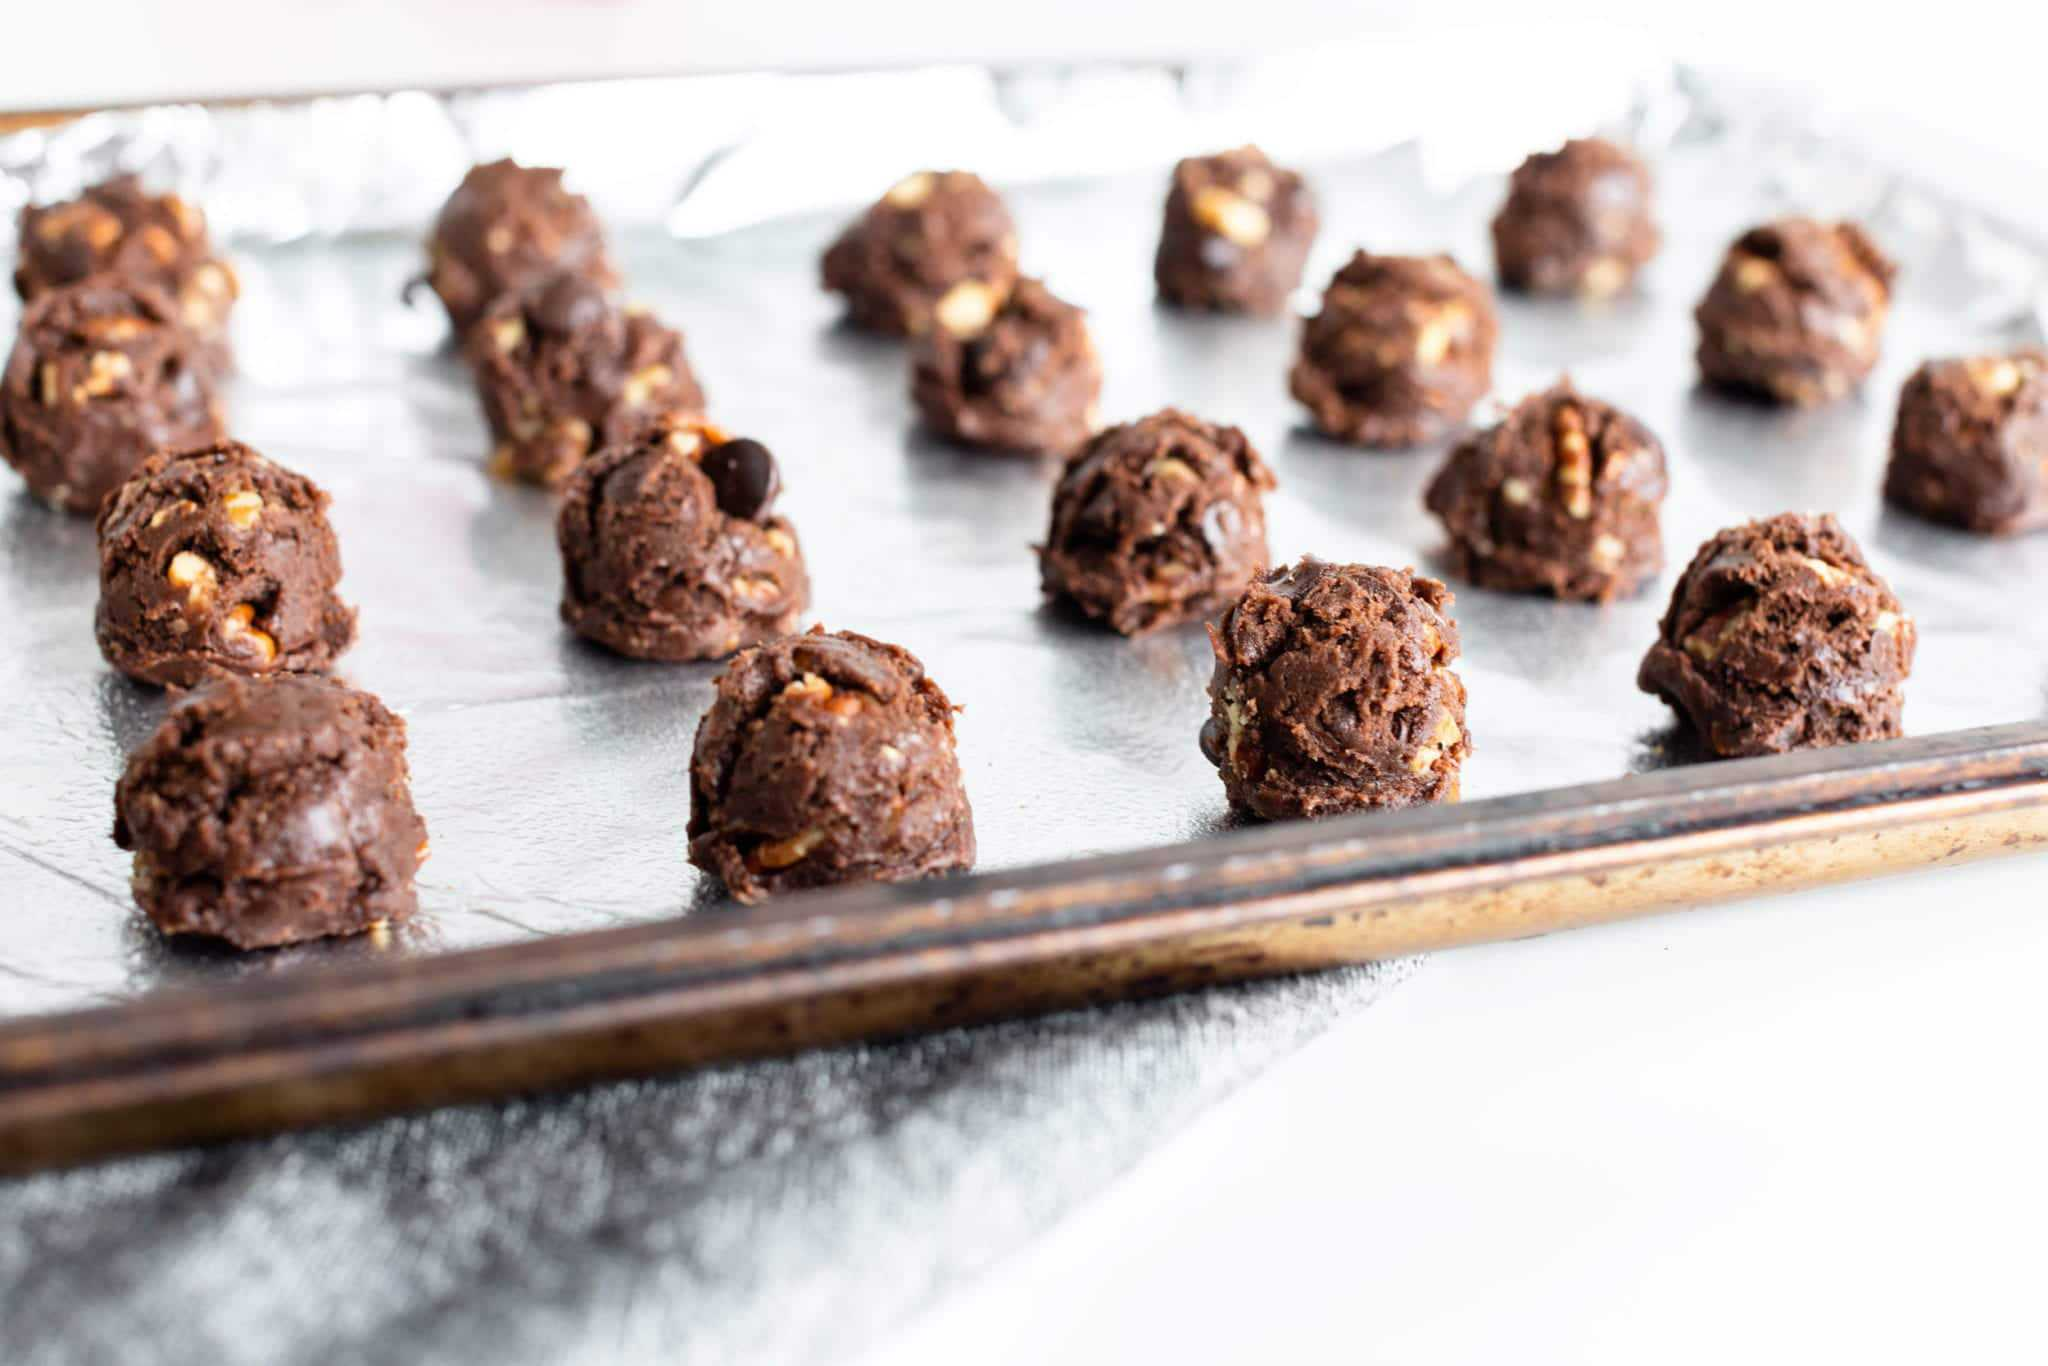 Chocolate Pecan Cake Mix Cookies - Cake Mix Cookie Dough using Duncan Hines Devil's Food Cake Mix (dough is scooped on baking sheet with small size scoop - dough is fudgy and thick)